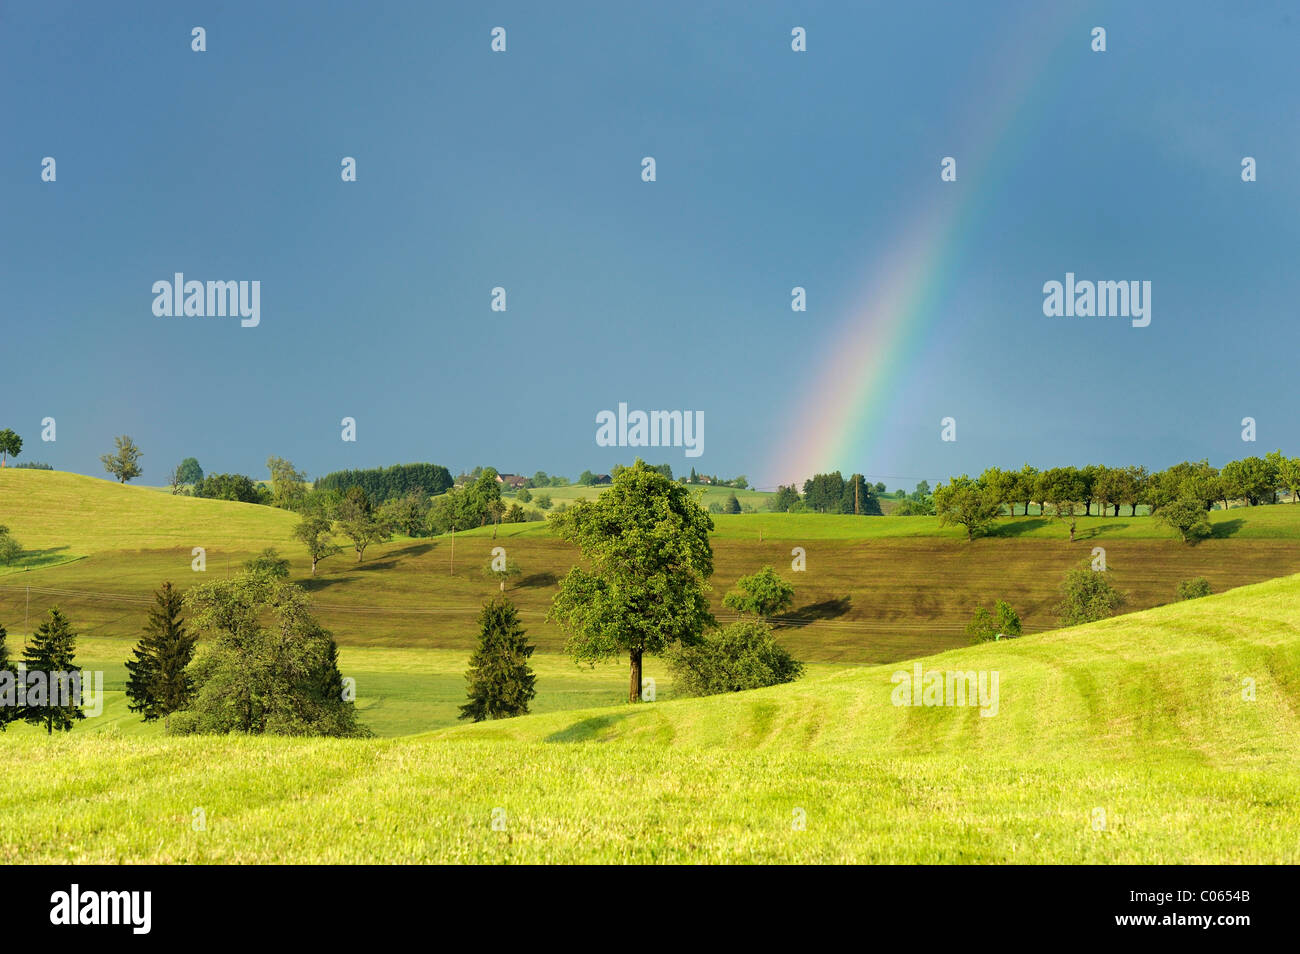 Cultural landscape in the Swiss Mittleland with a rainbow, Zug, Switzerland, Europe - Stock Image